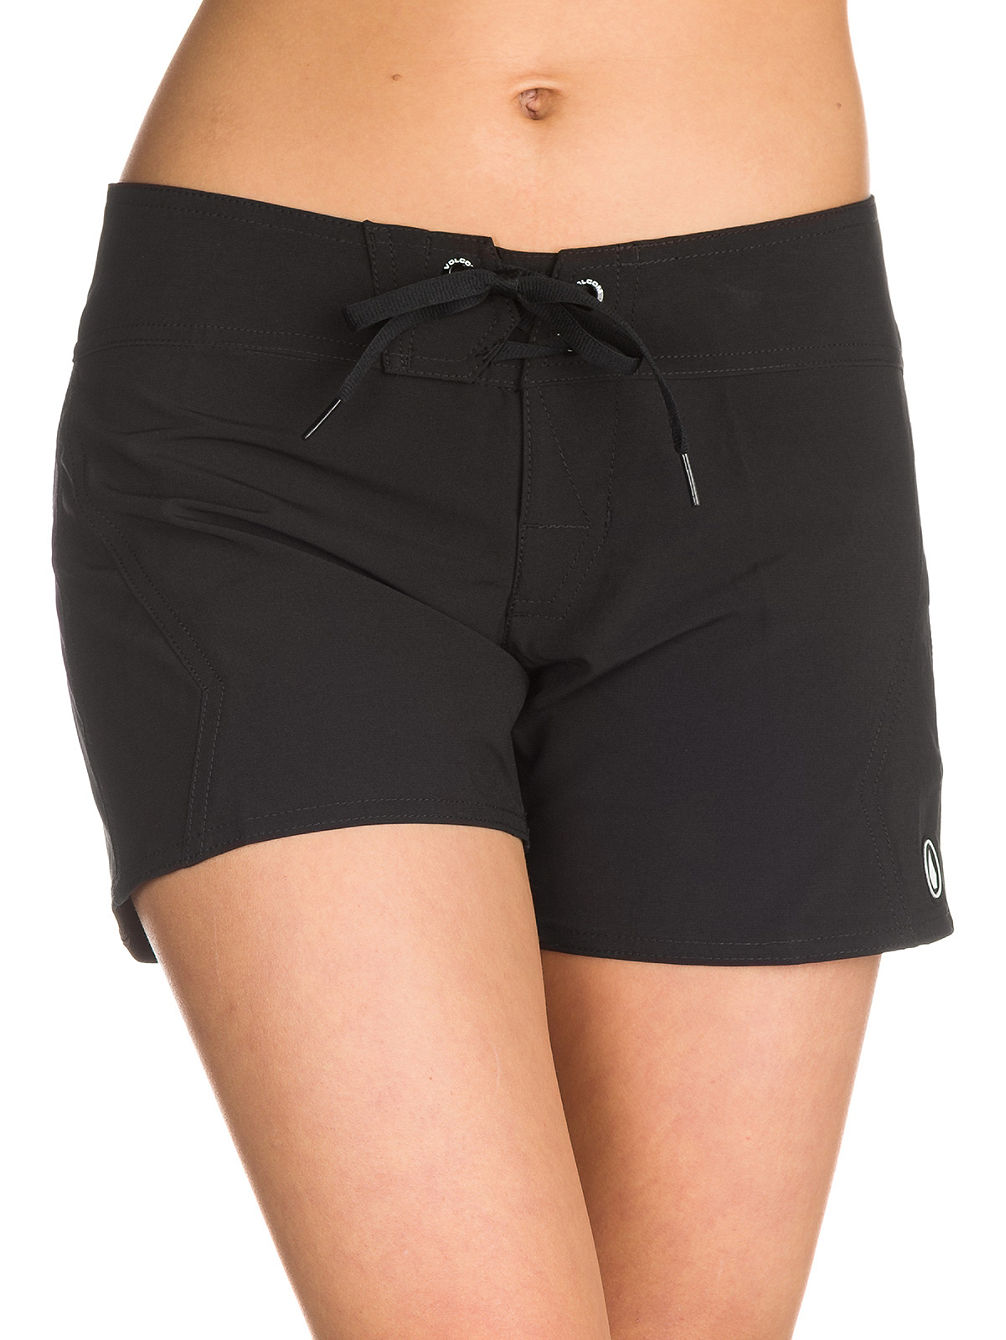 volcom-simply-solid-5-boardshorts